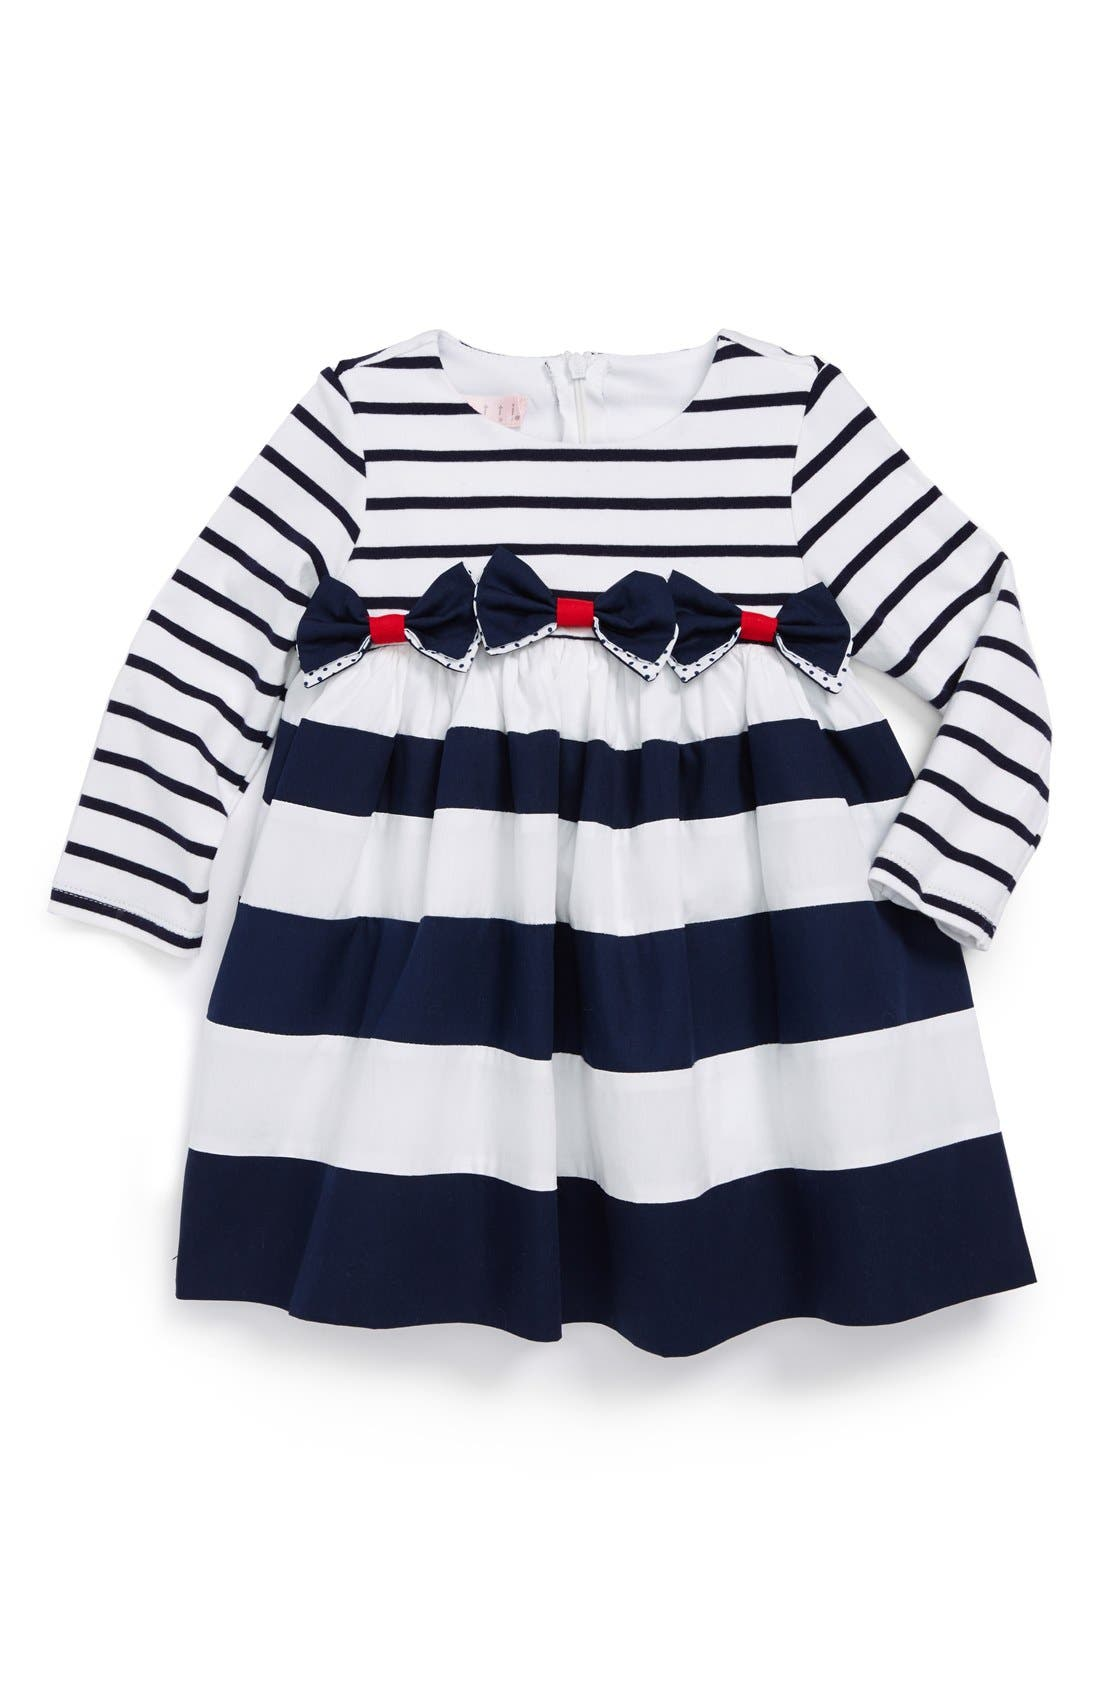 Alternate Image 1 Selected - Biscotti Stripe Dress (Baby Girls)